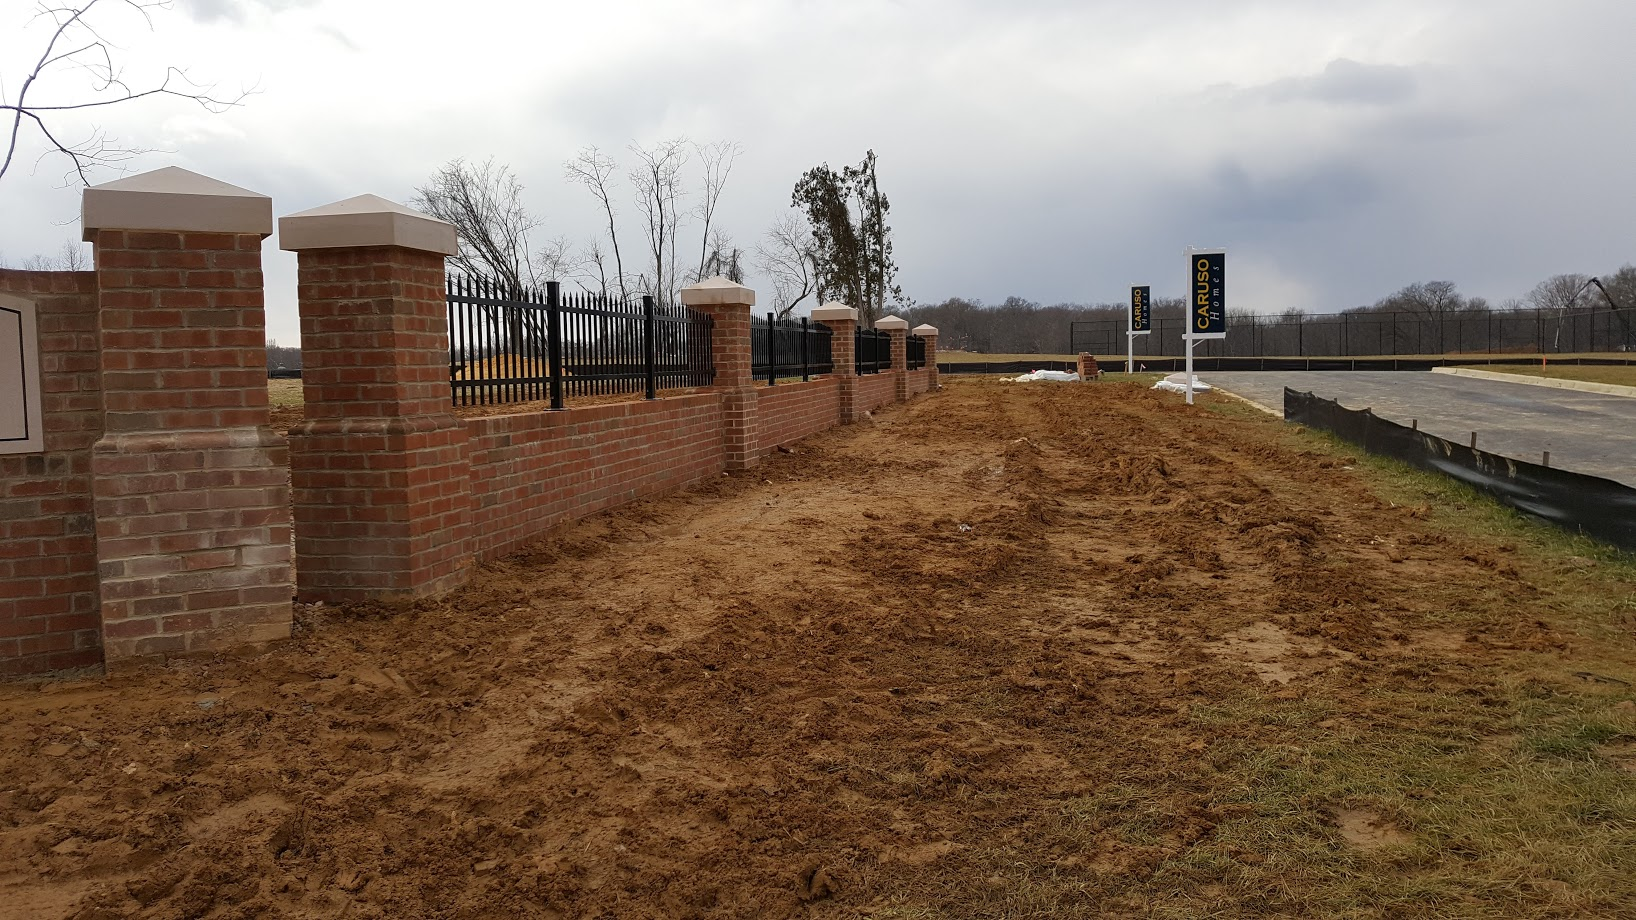 Retaining Wall Ornamental Rails